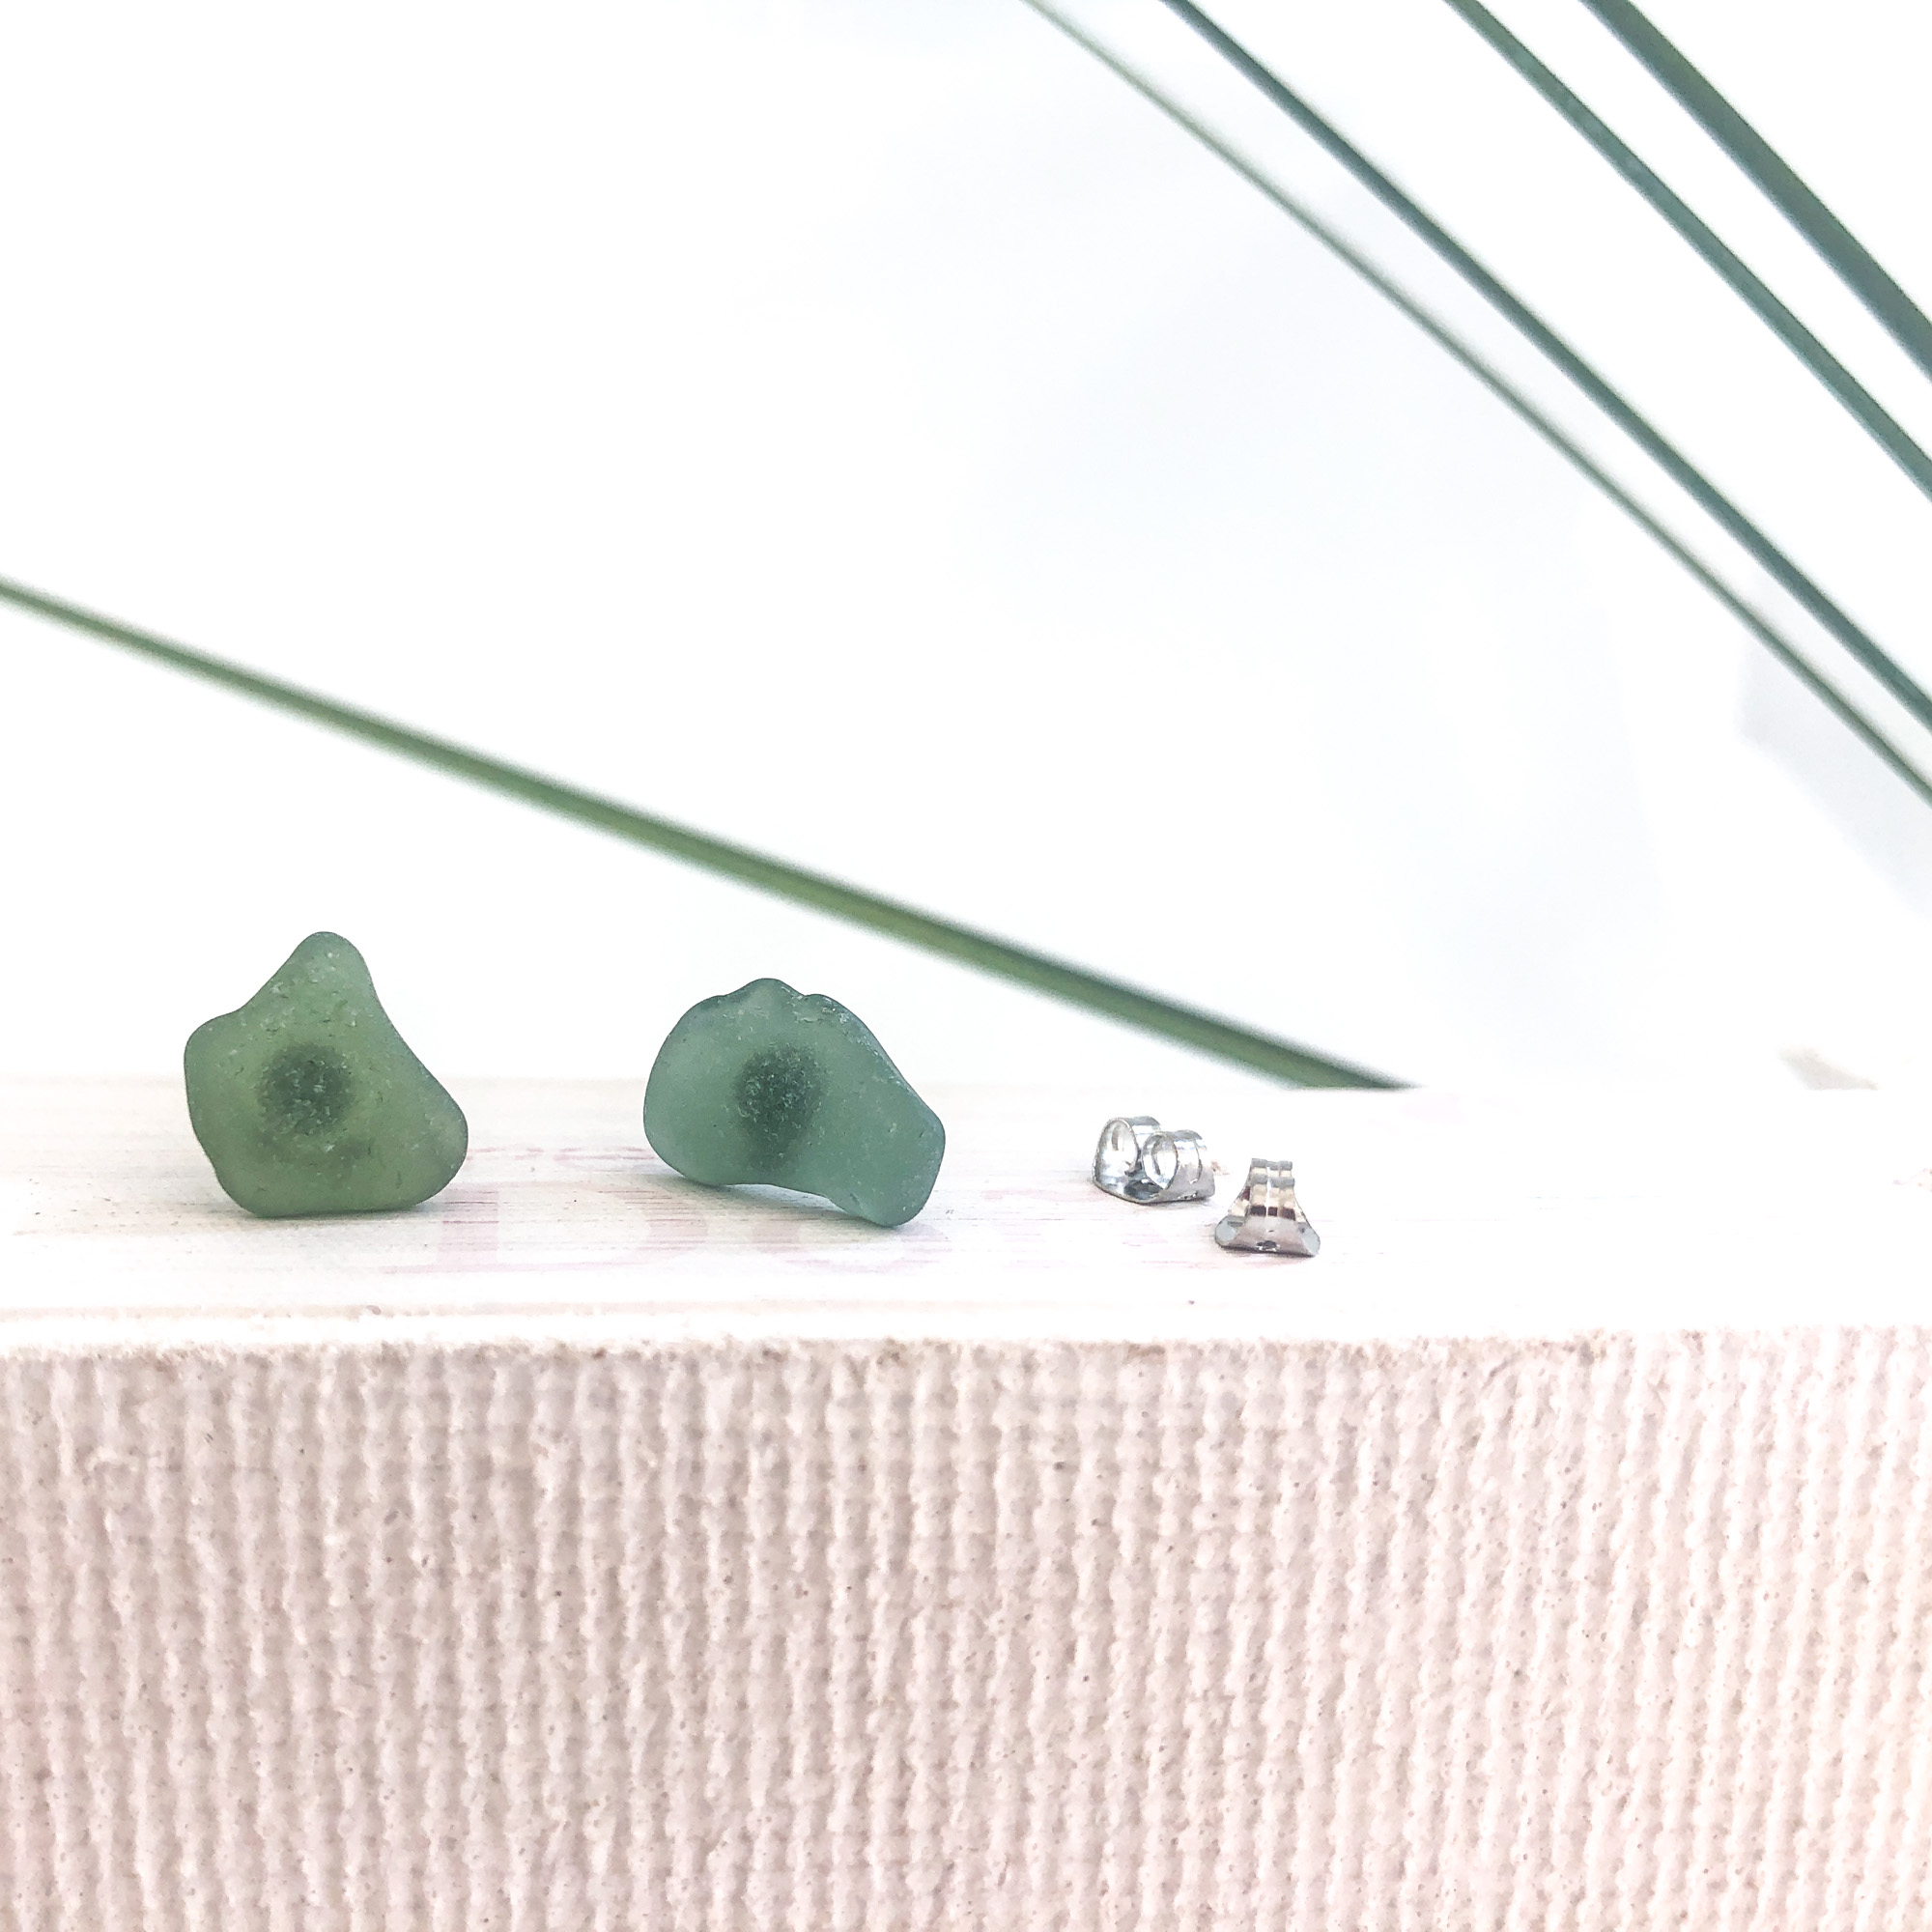 green sea glass studs - • genuine sea glass jewellery from France• handcollected at the French riviera• stainless steel posts• SGES1.215 Euro